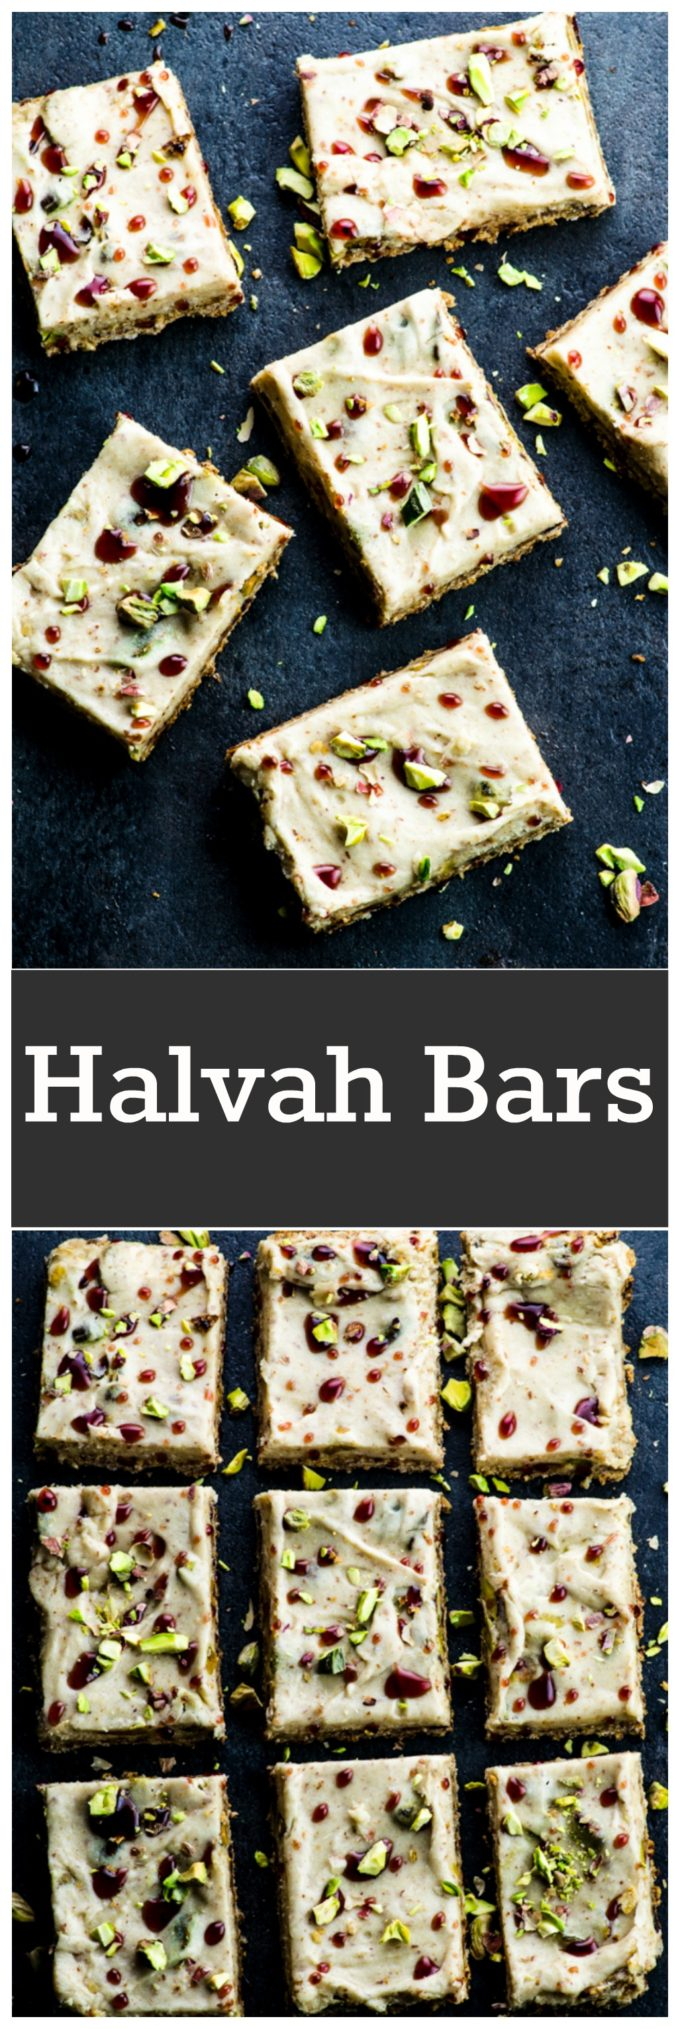 These vegan halvah bars are definitely not your everyday dessert! Absolutely irresistible, strangely addictive and gluten free.